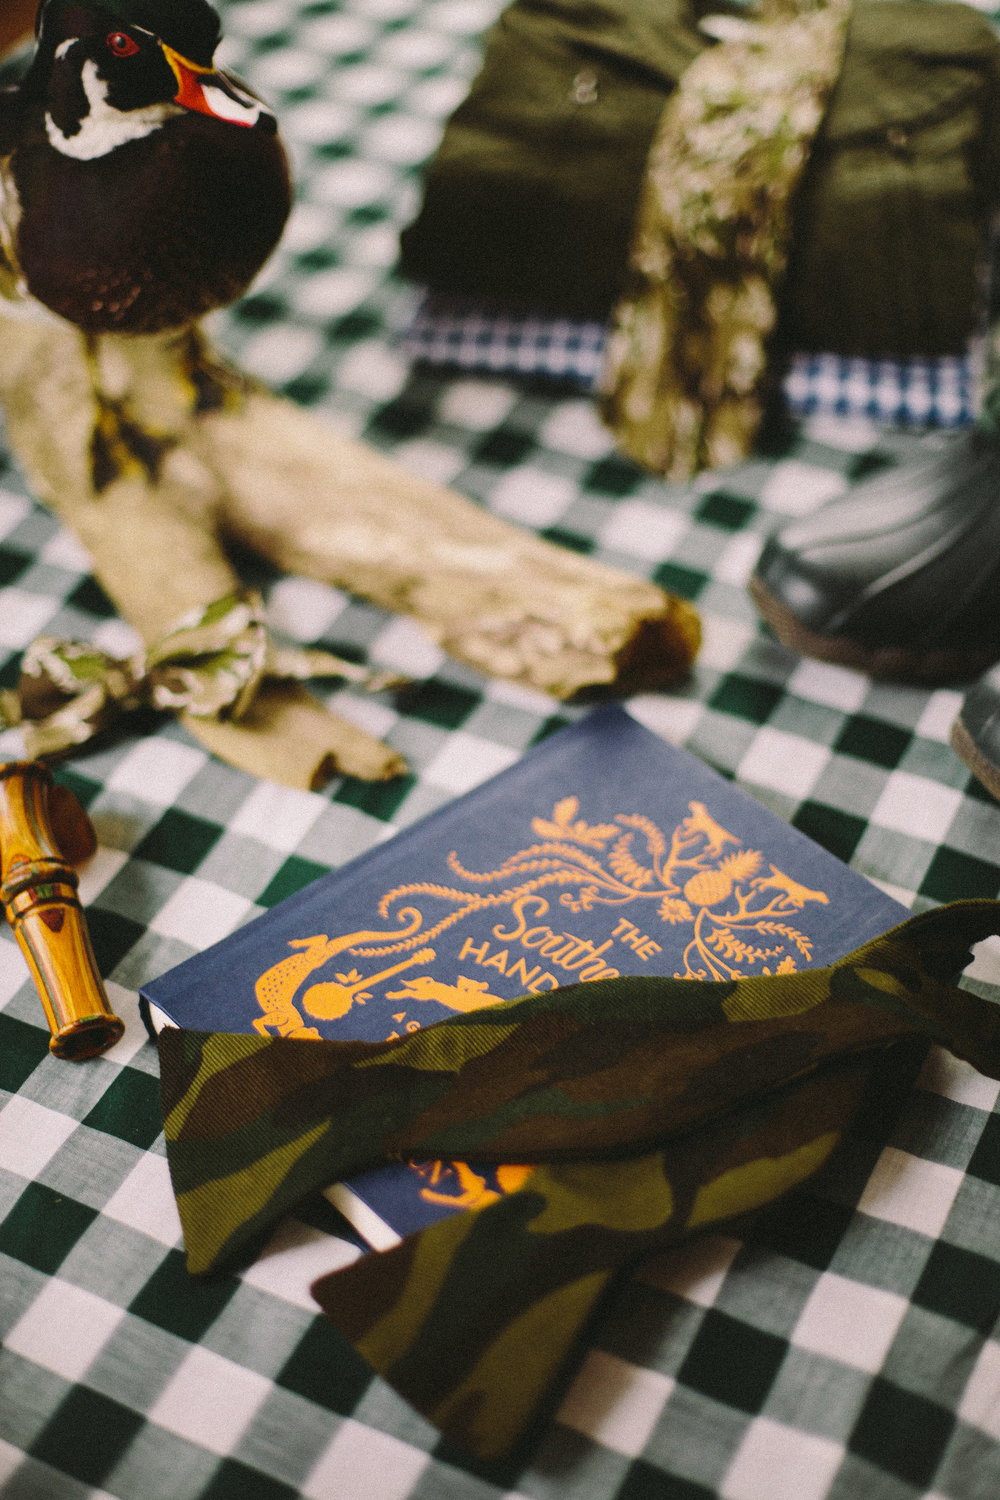 The Stylish outdoorsman - These ties are the perfect pieces to add just a hint southern style and to show your love of hunting and the great outdoors.